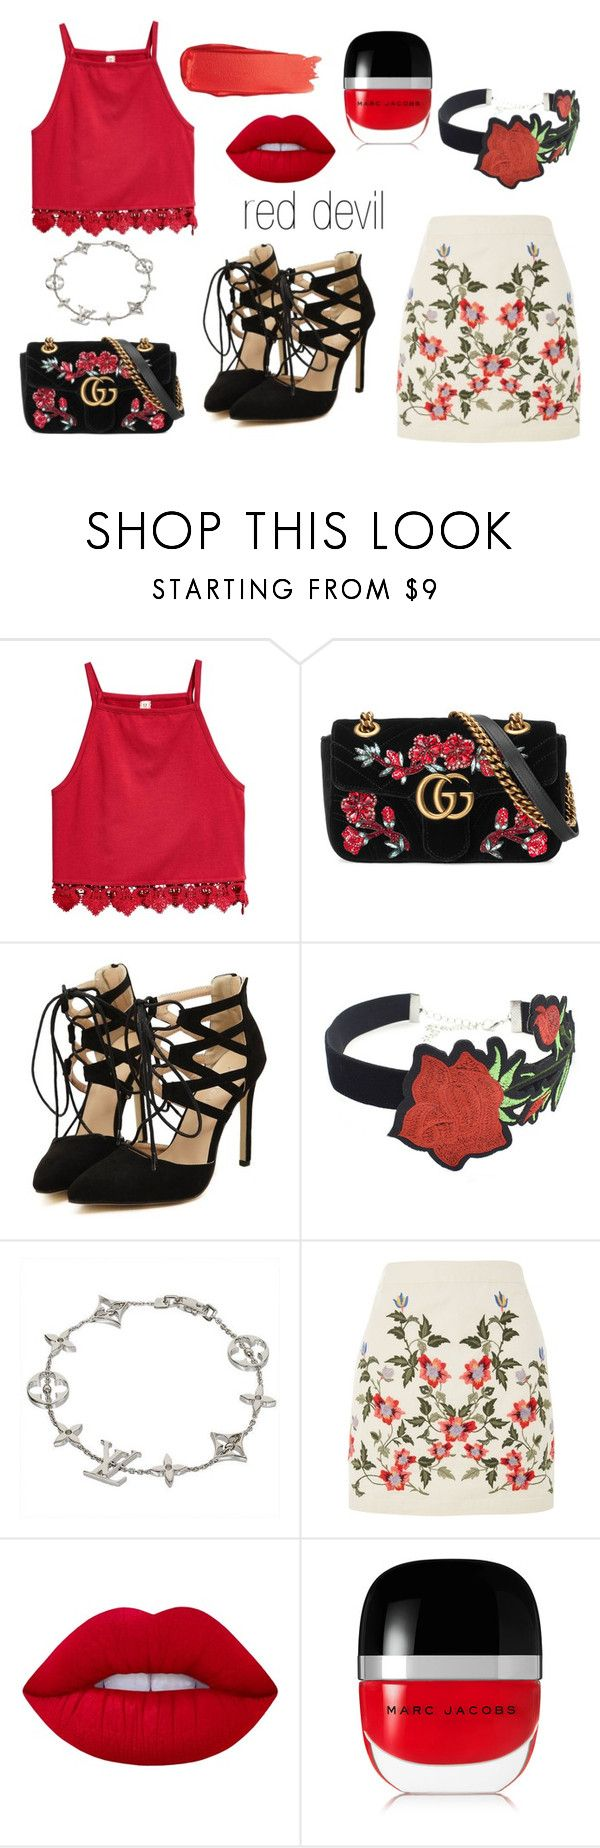 """""""Red devil"""" by kovacslilla on Polyvore featuring Gucci, WithChic, Louis Vuitton, Topshop, Lime Crime, Marc Jacobs and Bobbi Brown Cosmetics"""